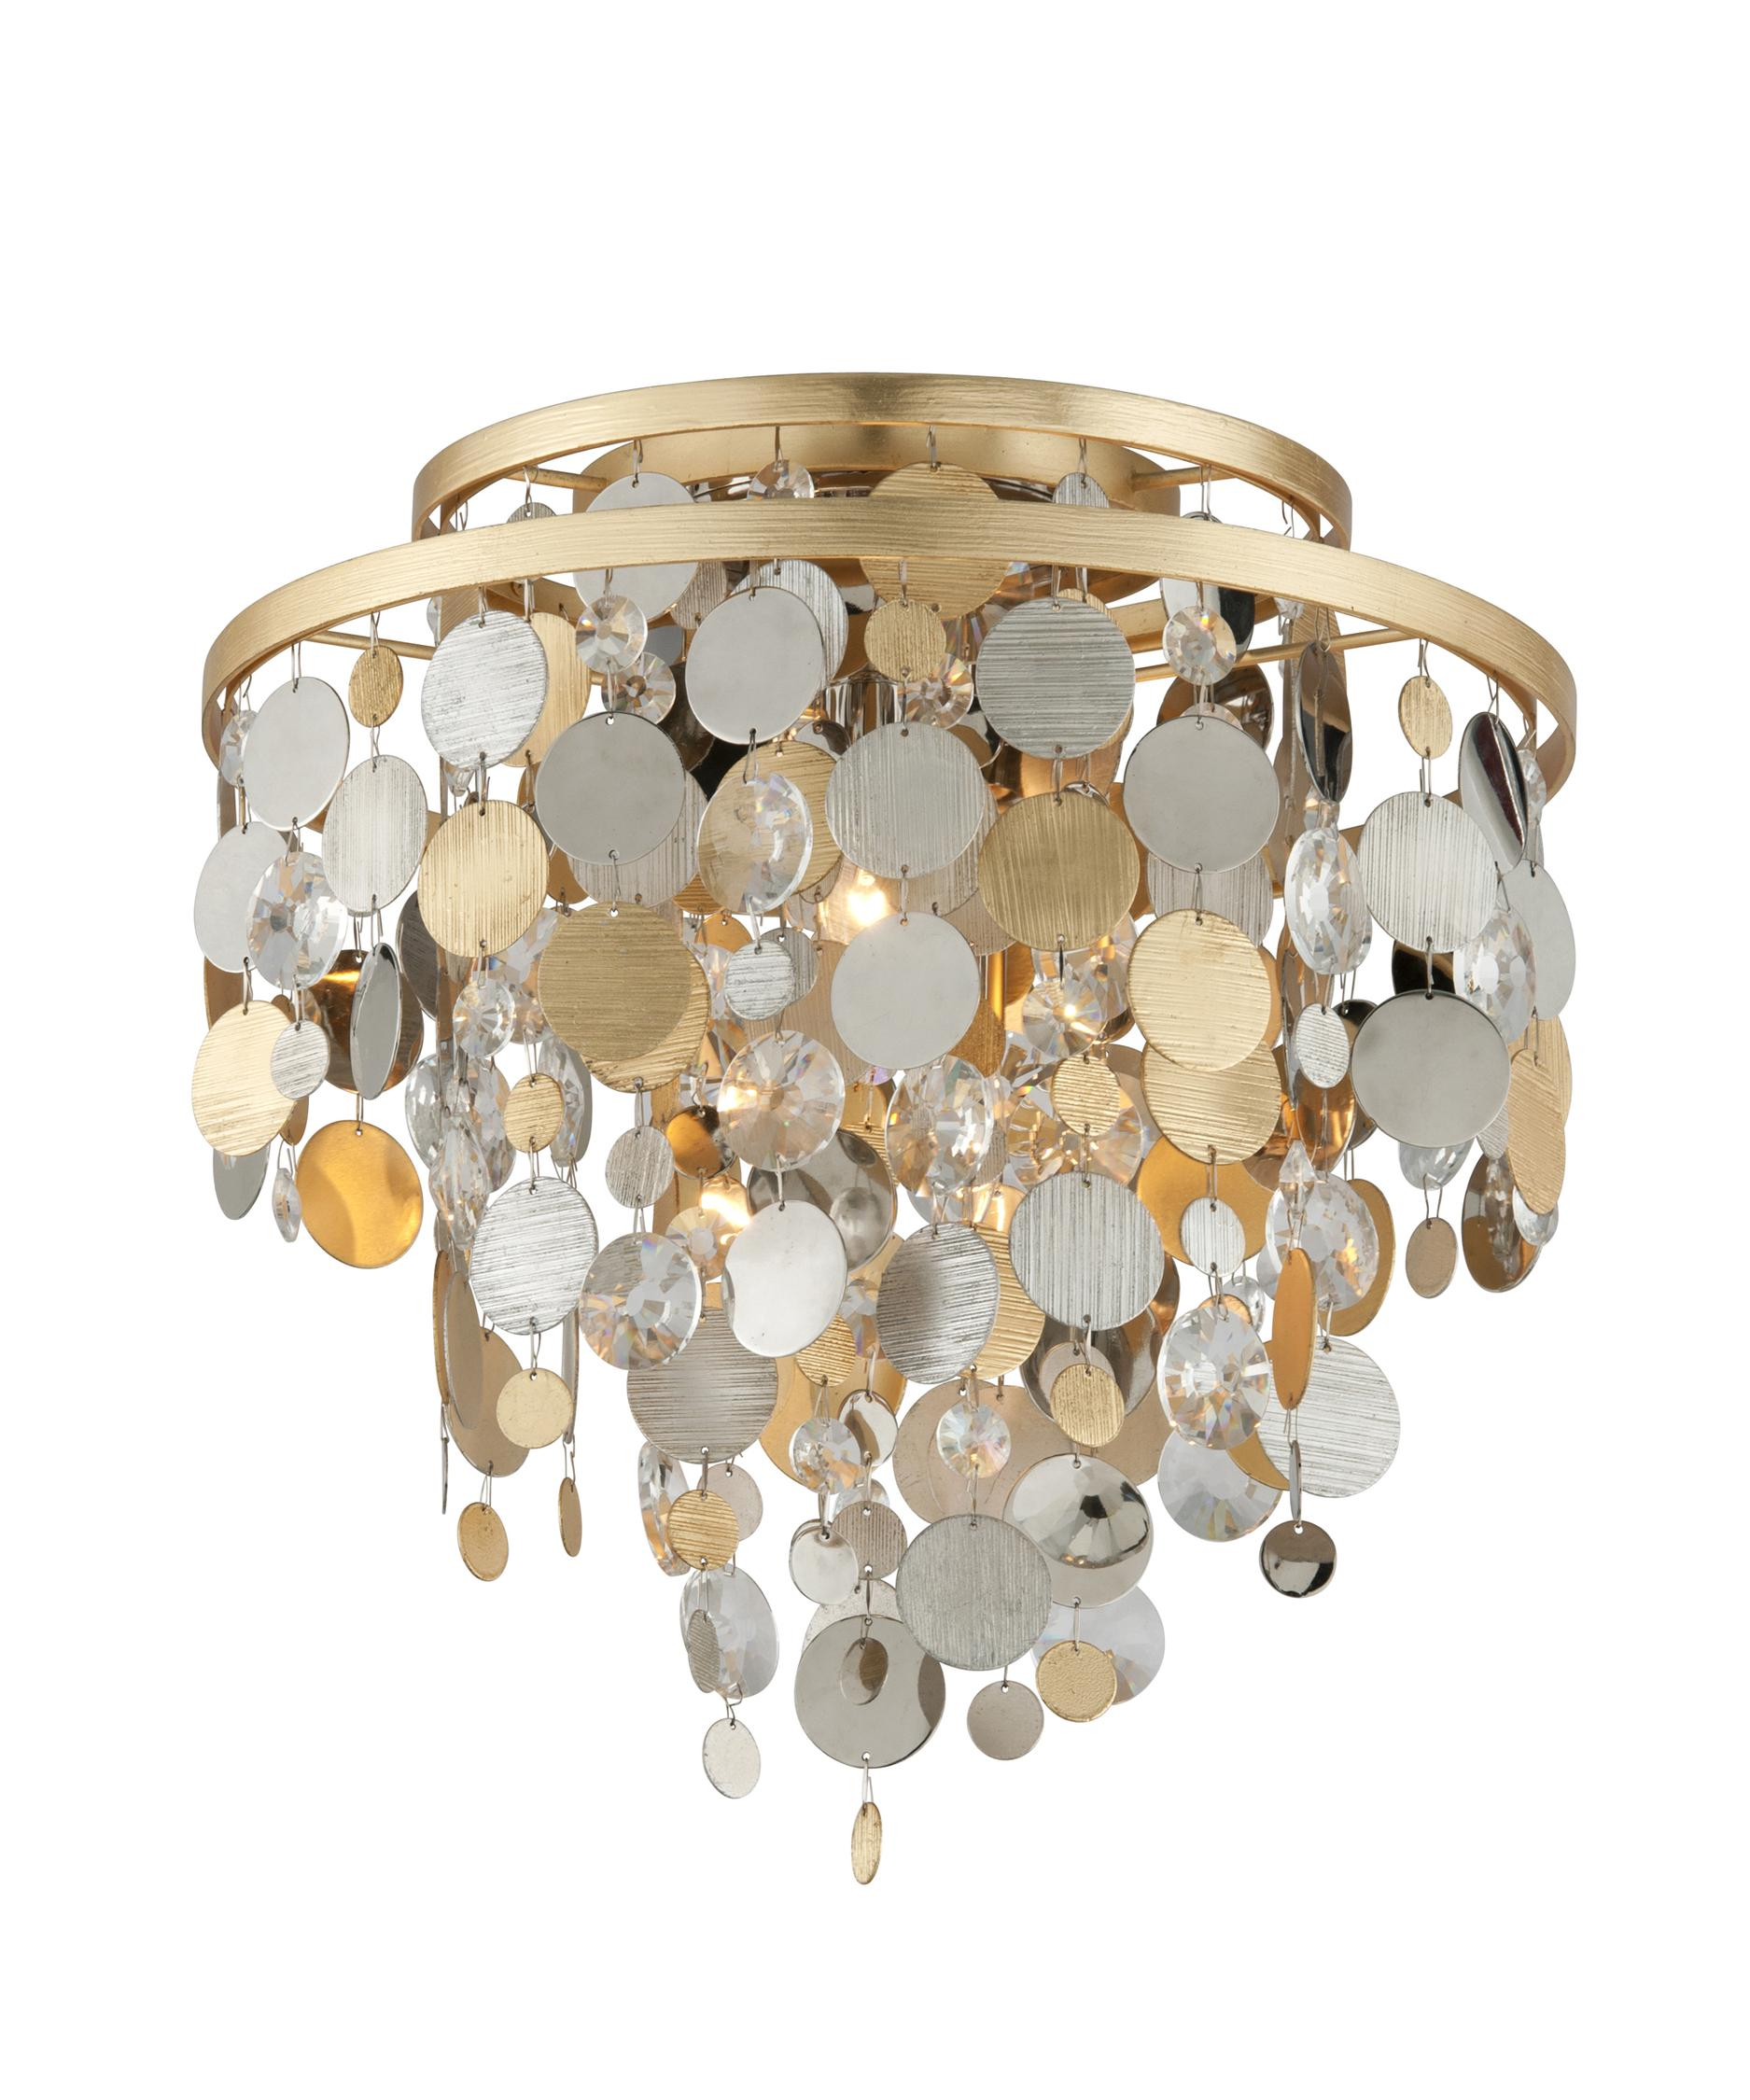 shown in gold and silver leaf finish and gold silver leaf clear accent - Corbett Lighting